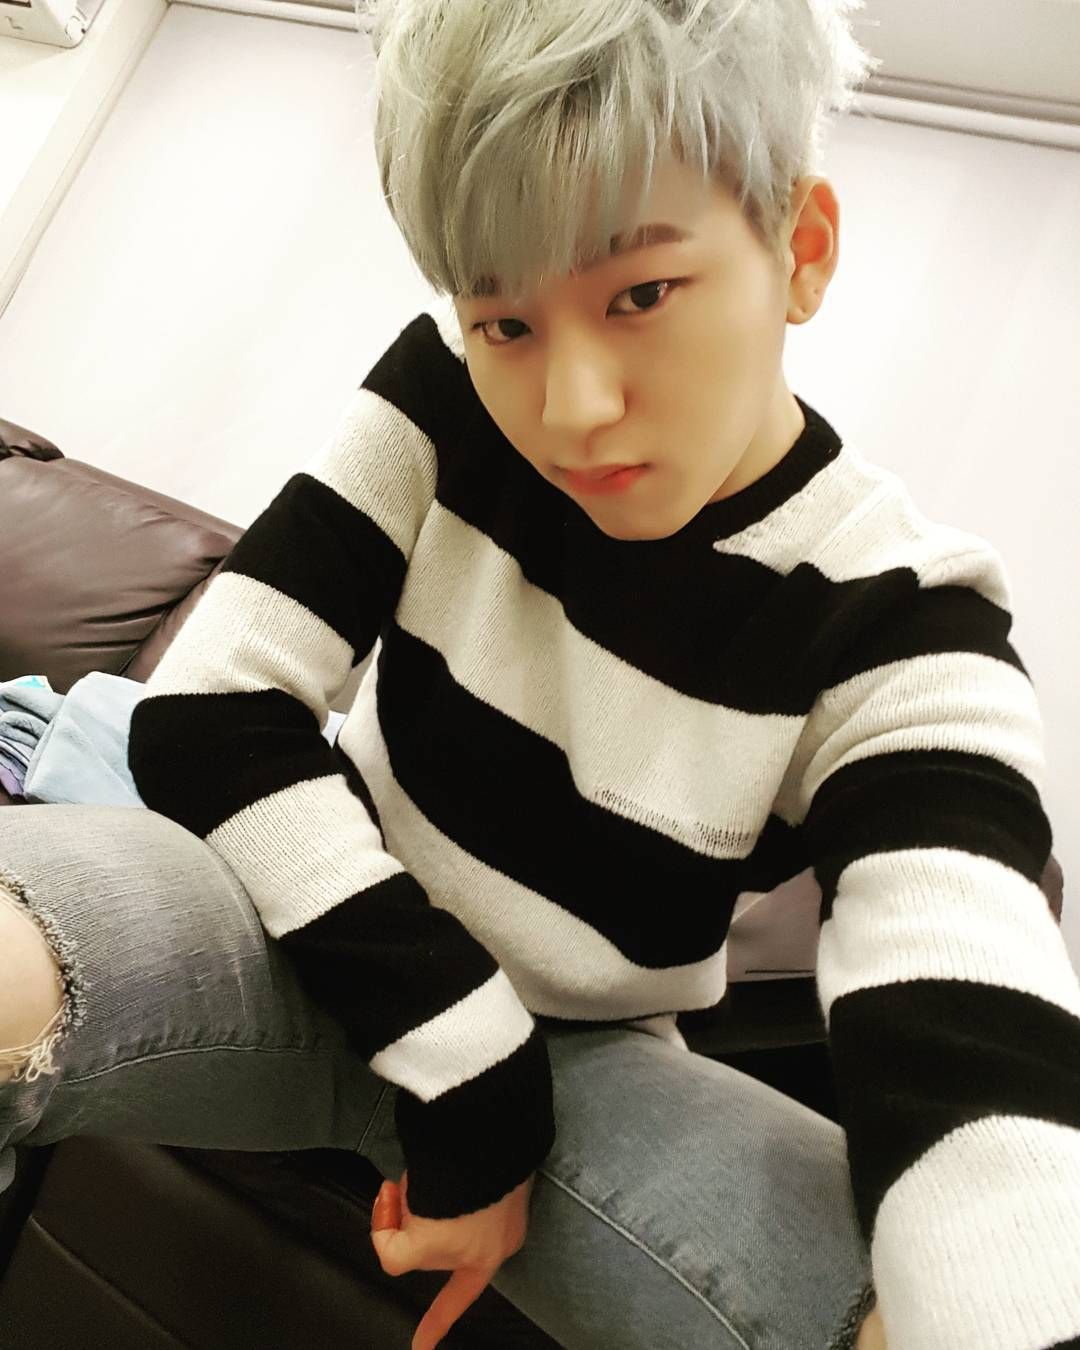 Awesome Zico Kpop Instagram wallpapers to download for free greenvirals